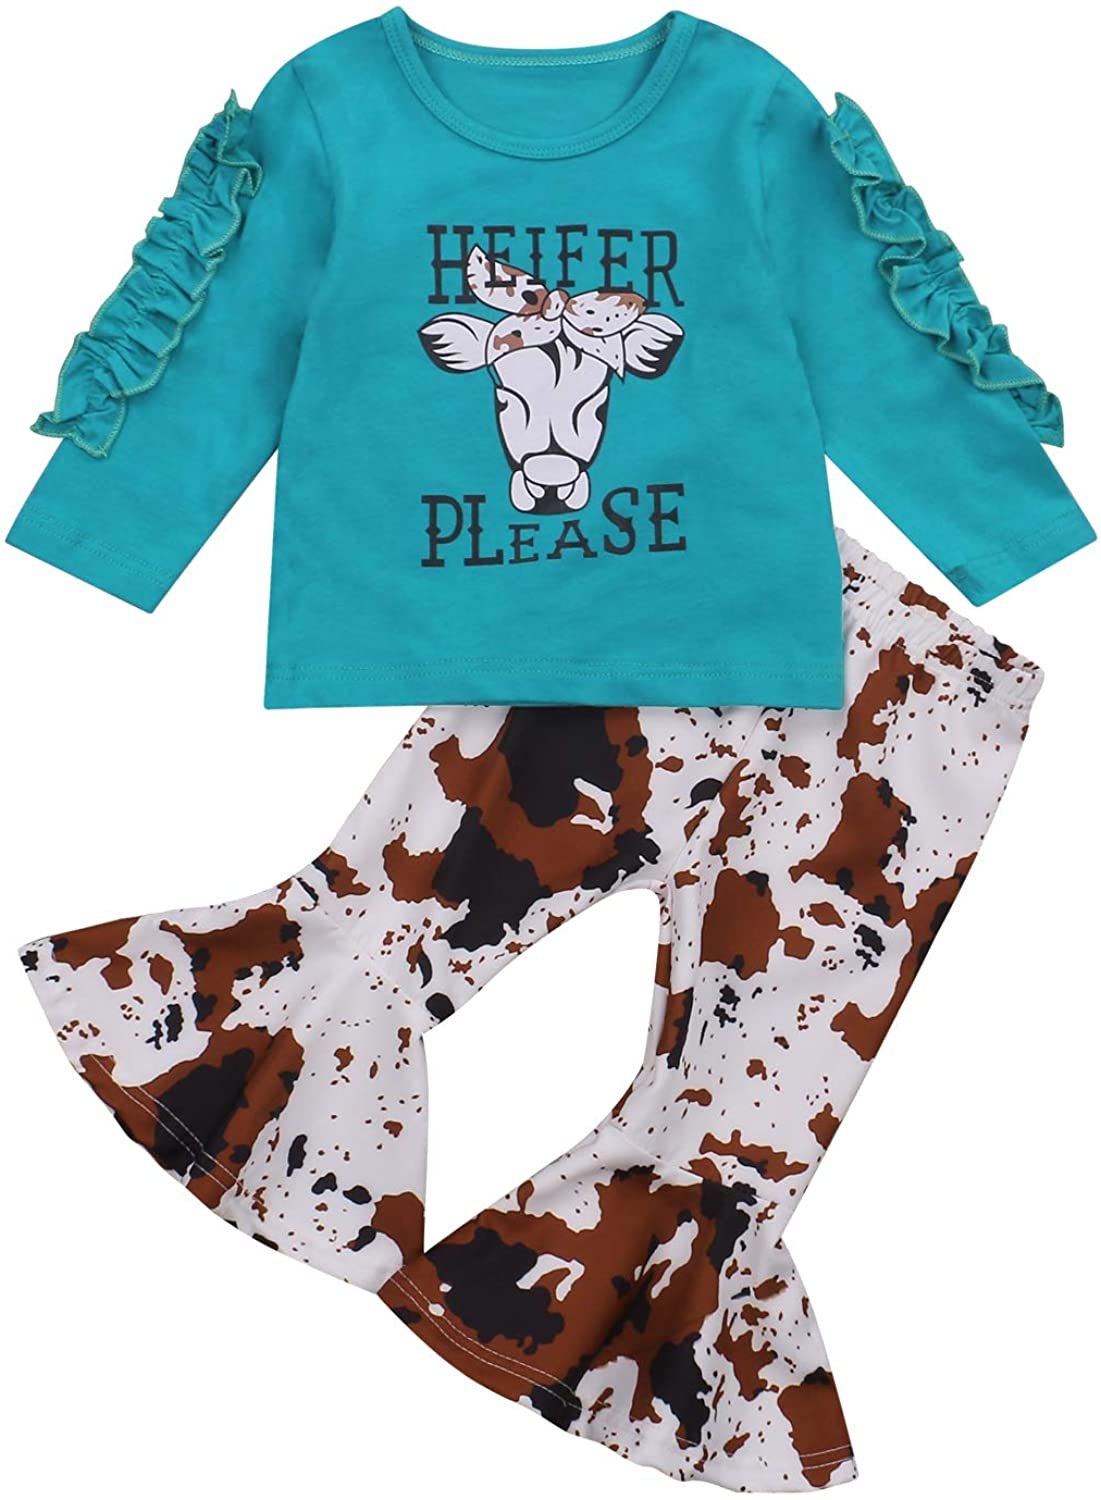 Toddler Newborn Baby Girl Flared Long Sleeve T-Shirt Sunflower Tops Bell Bottoms Pants with Headband 3Pcs Outfit Set